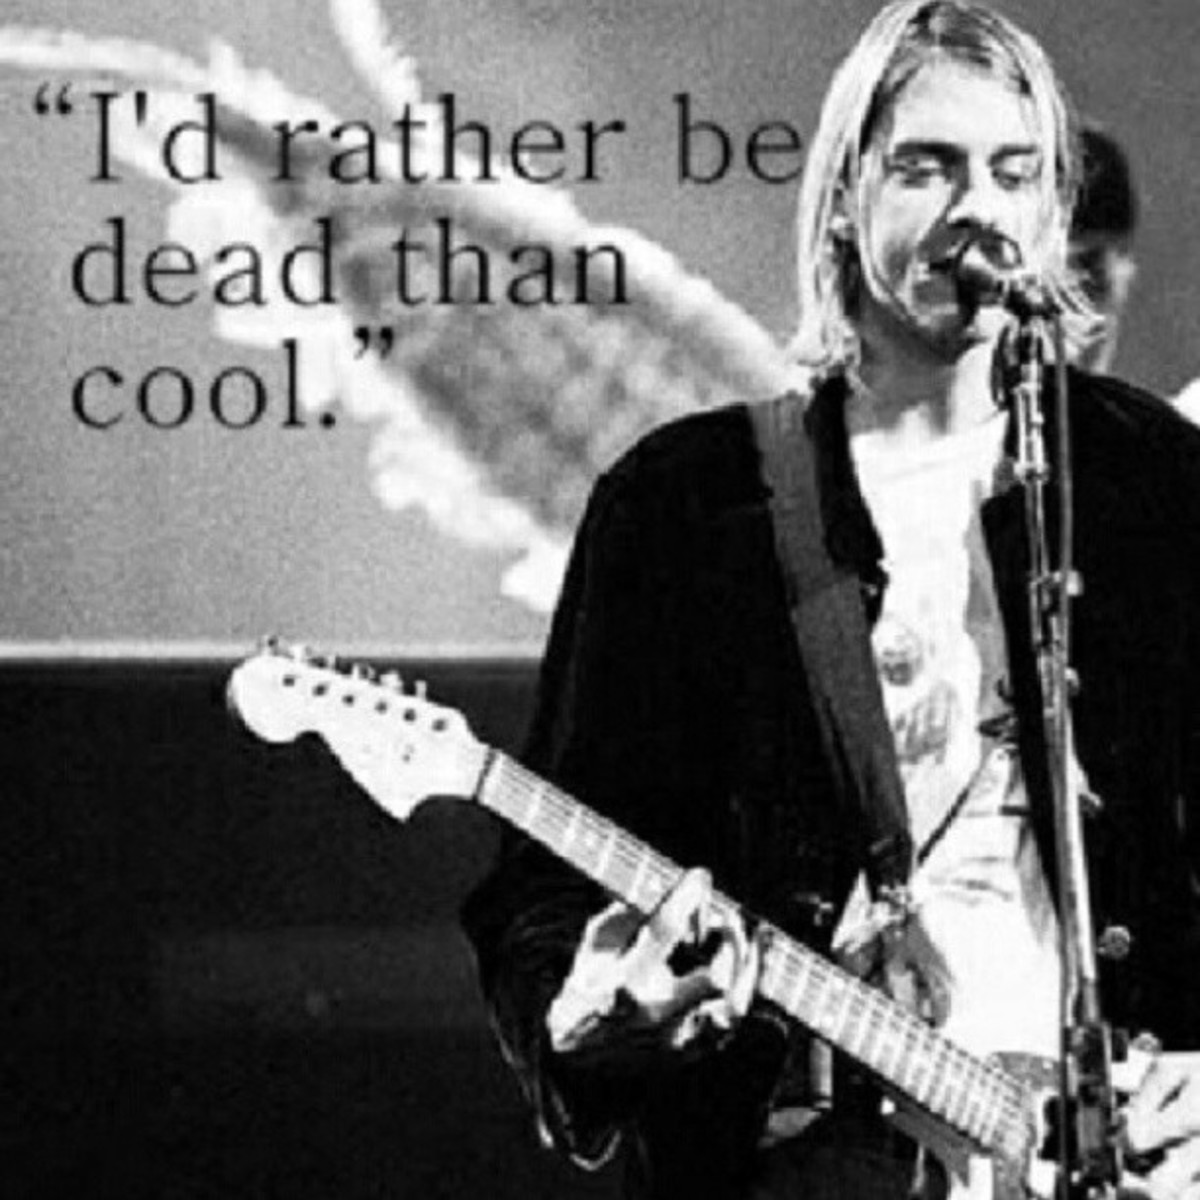 Haunting words by Kurt Cobain.